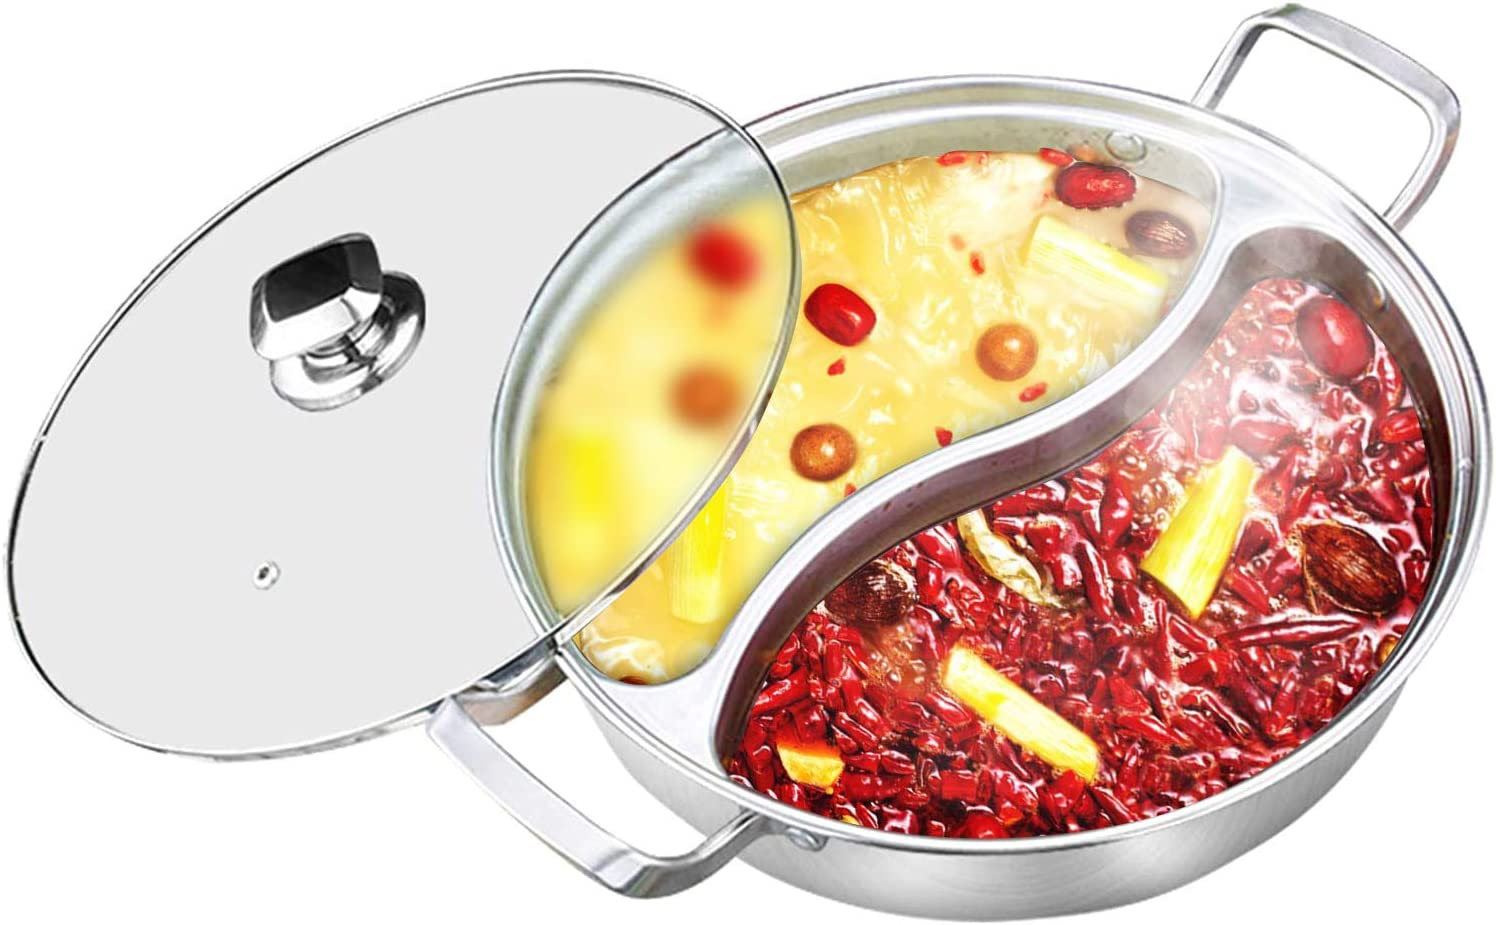 32CM Stainless Steel Twin Divided 2 Grid 2 Taste Cooking Hot Pot Cookware Yuanyang Pots Suitable for All Induction Cookers Gas Stove Halogen Furnace Home Kitchen